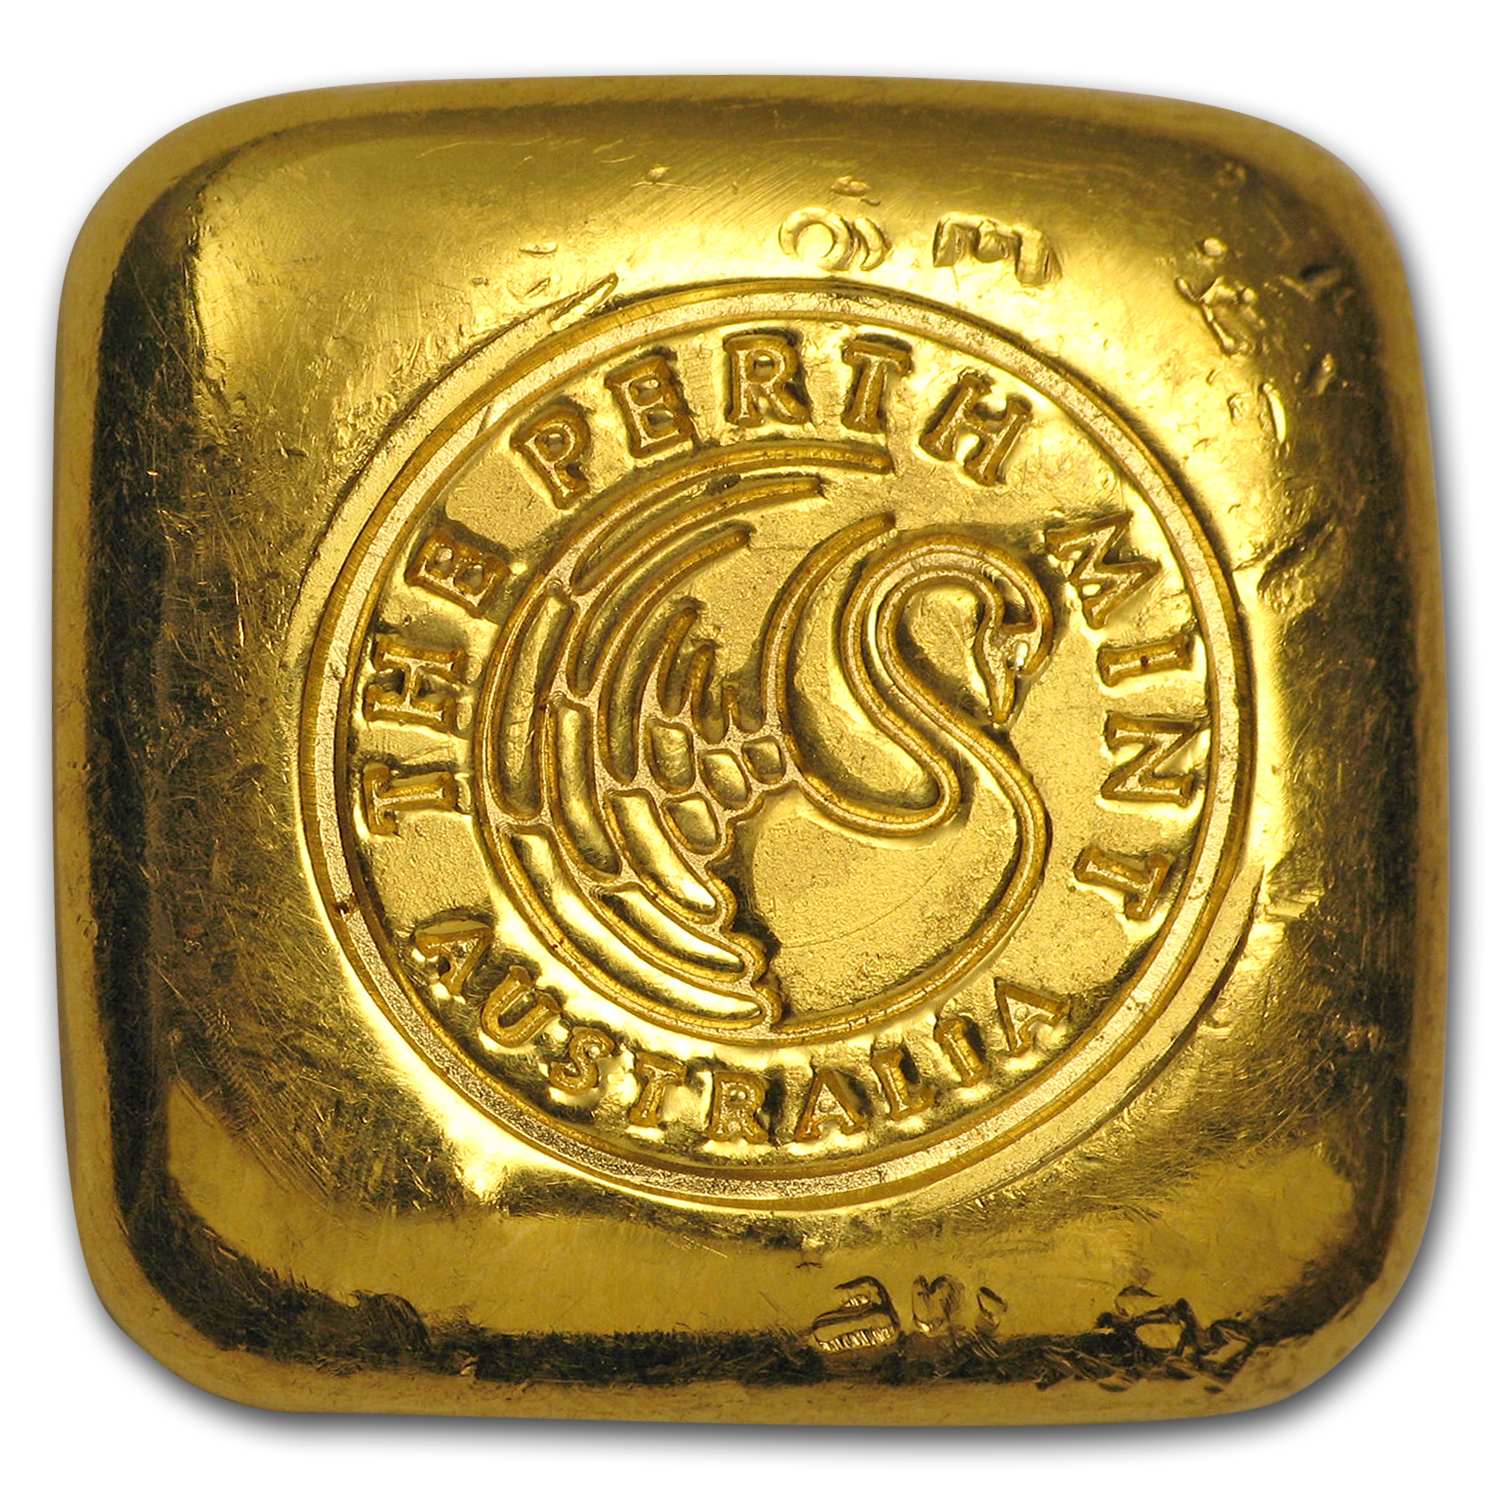 1 oz Gold Square Button - Perth Mint